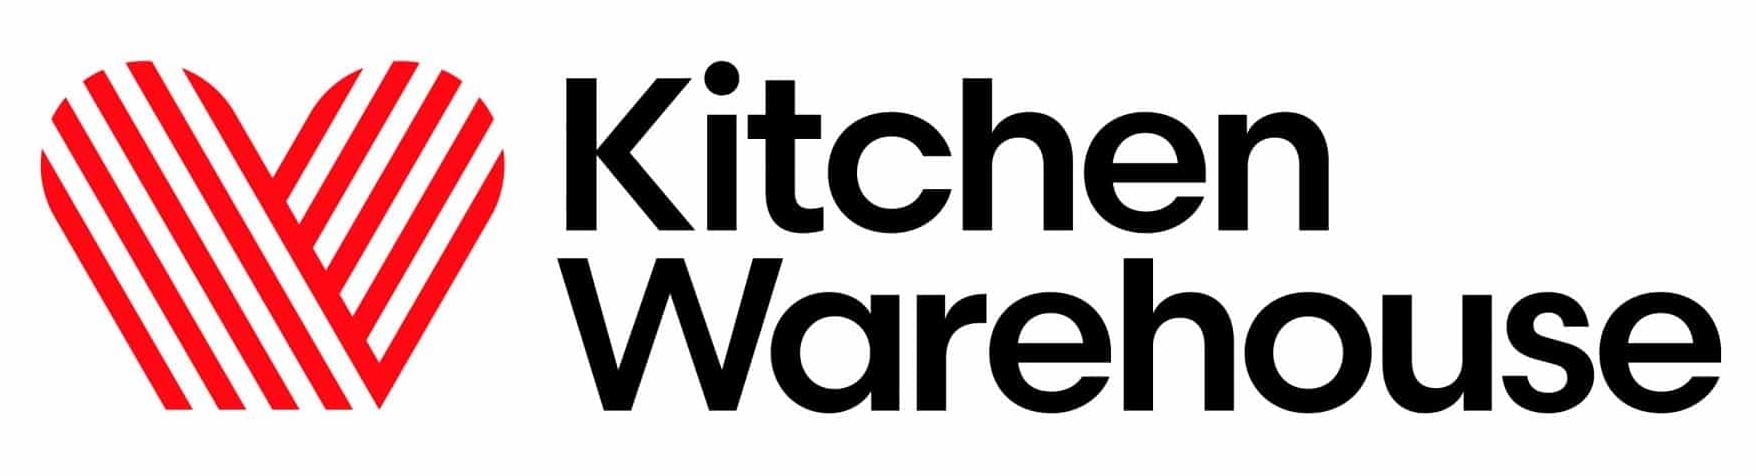 Kitchen Warehouse Australia - Buy InstantPot today